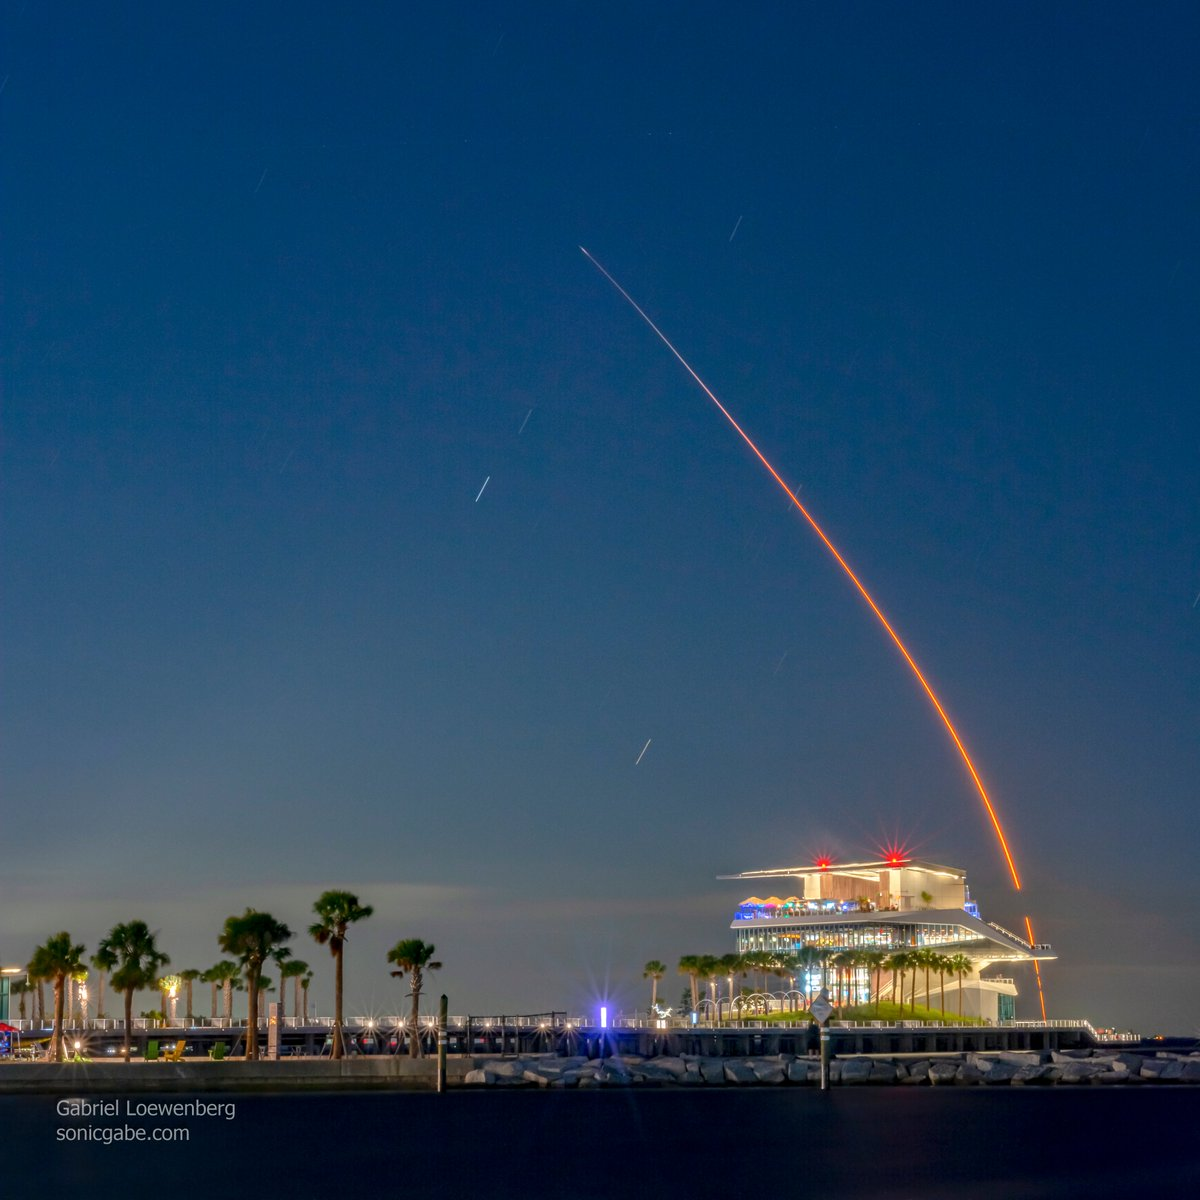 Tonight's @SpaceX #StarlinkL15 launch over the @StPetePier, a single 114-second exposure. This was the 100th SpaceX launch and the 7th flight for this rocket body. #SpaceX #Falcon9 #Starlink #StPetePier #ILoveTheBurg #rocketscience #photooftheday #LaunchAmerica